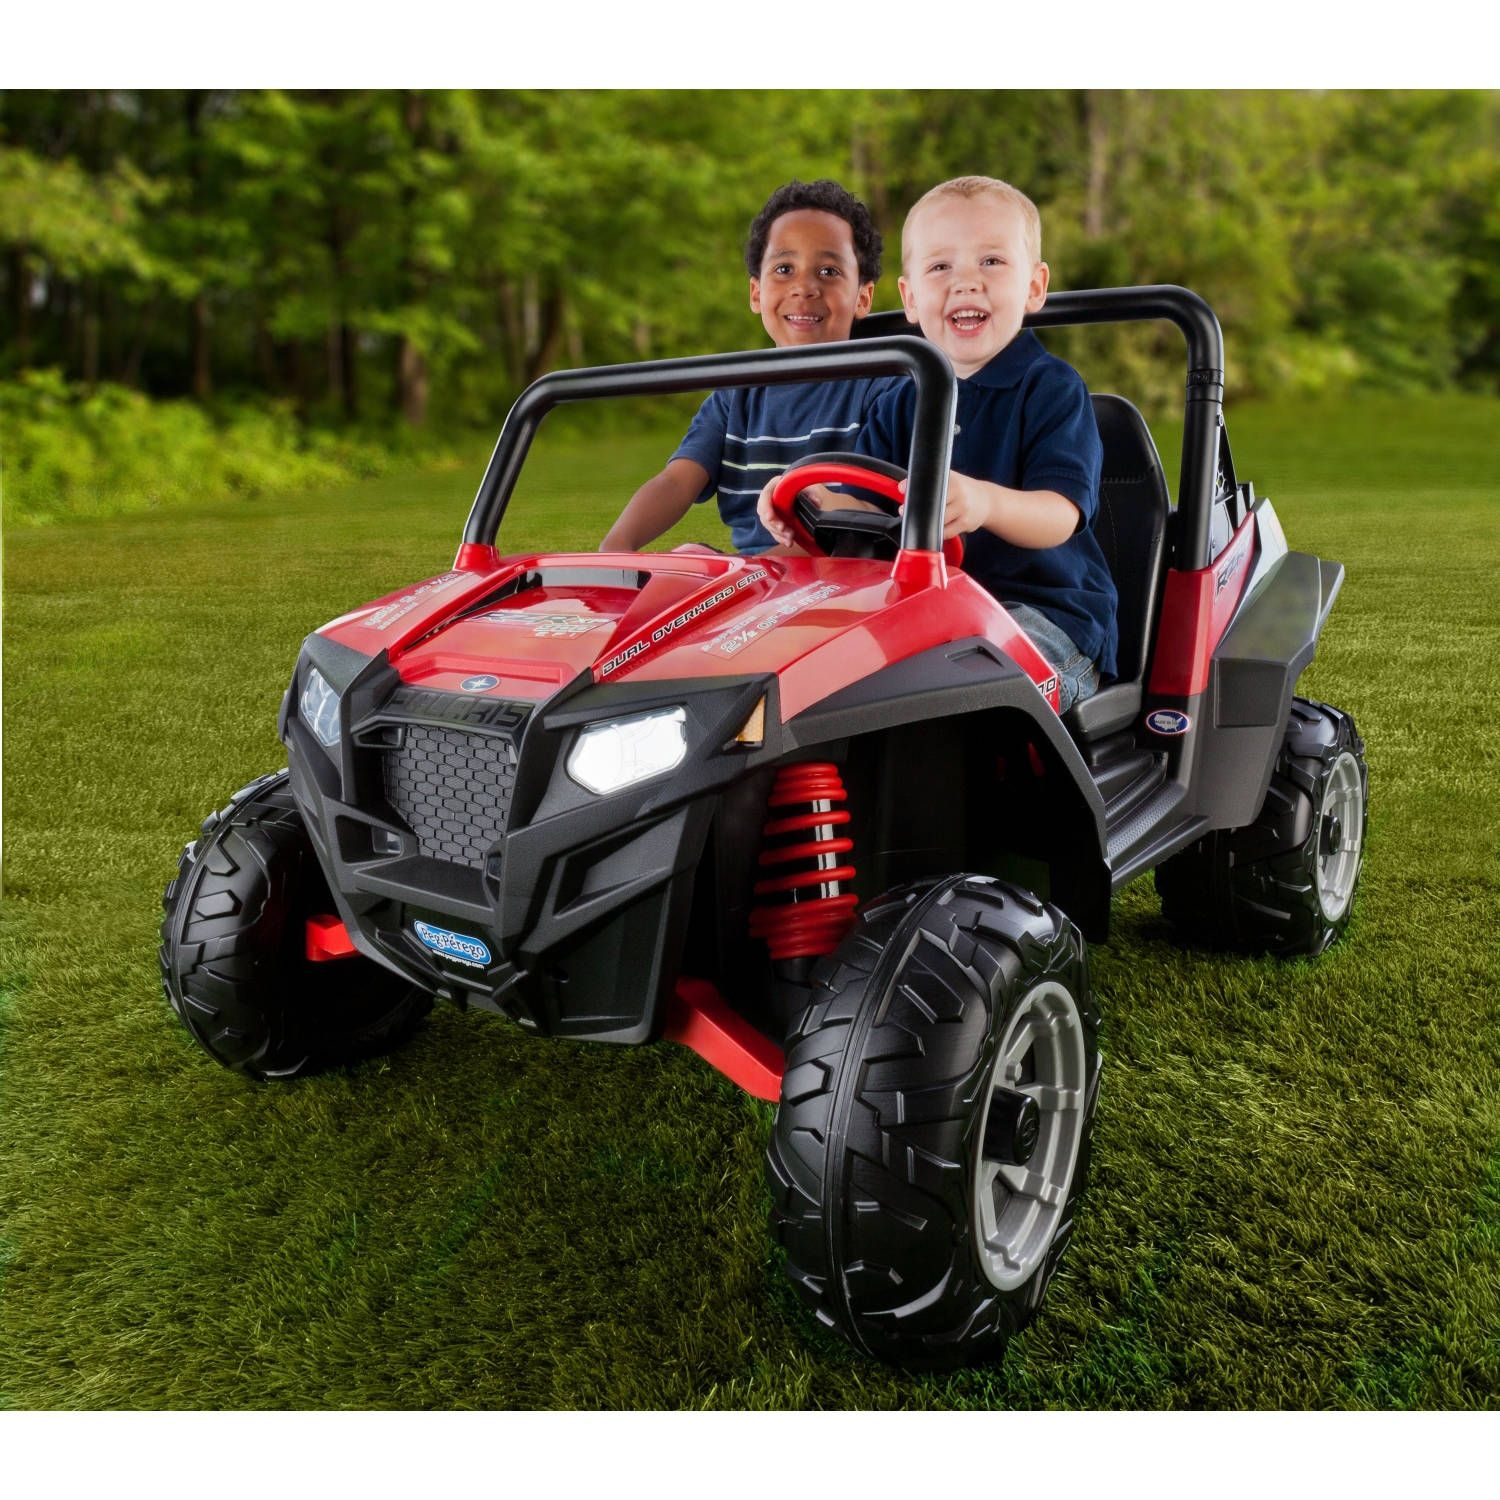 peg perego polaris ranger rzr 900 12 volt battery powered ride on